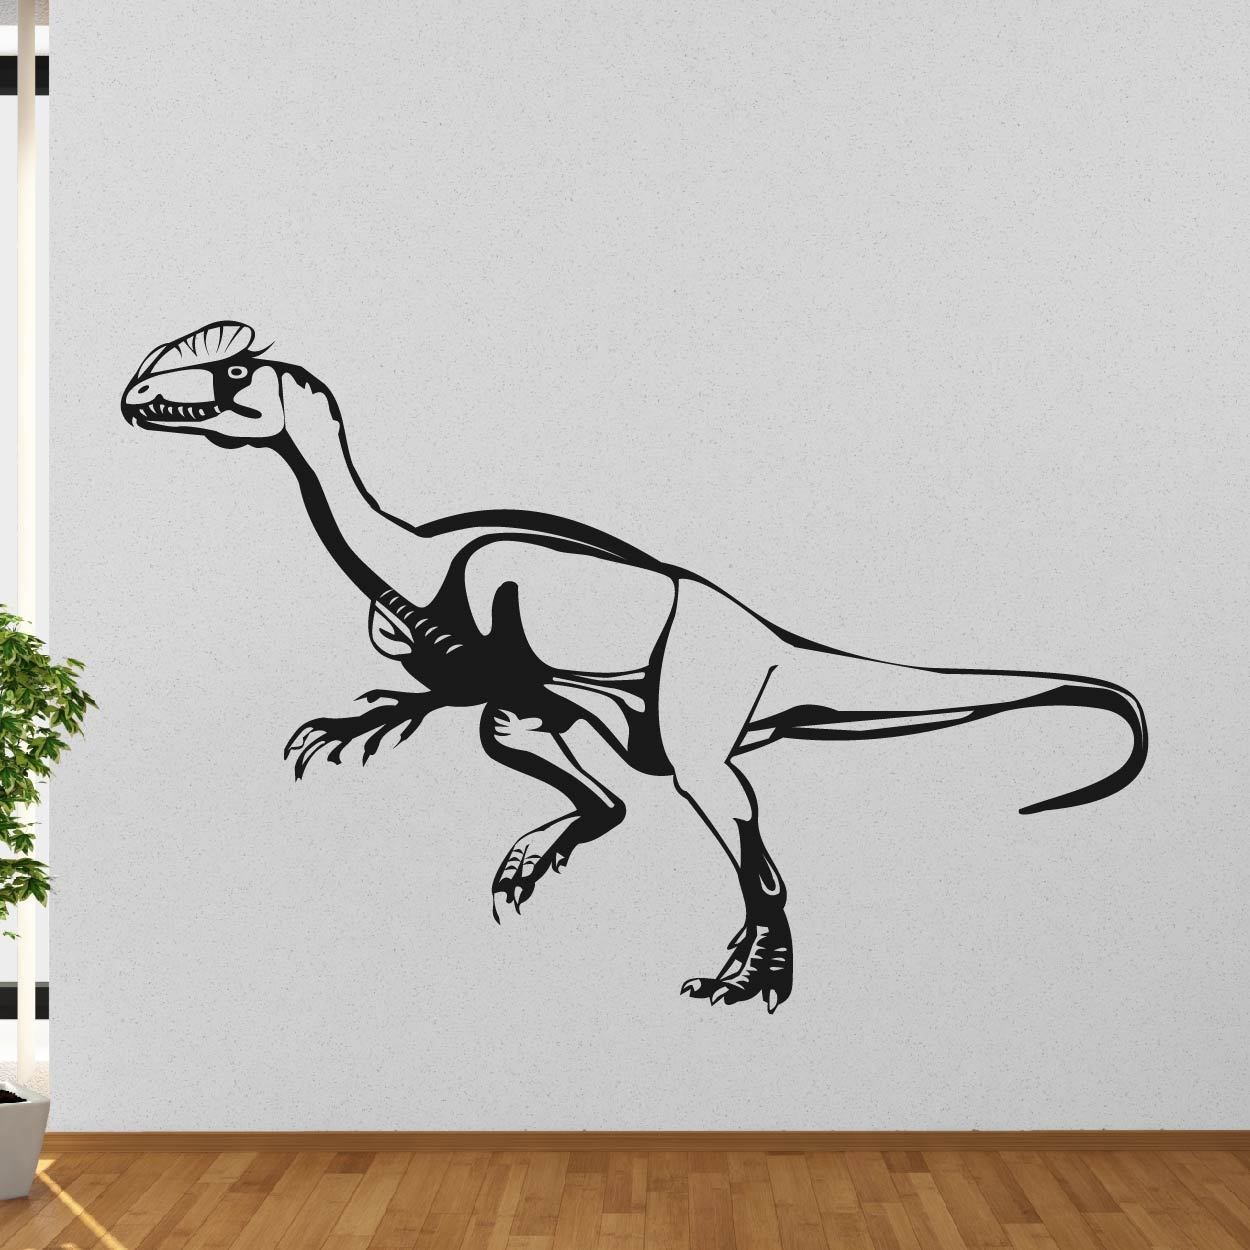 Velociraptor Dinosaur Wall Art Sticker (AS10344)